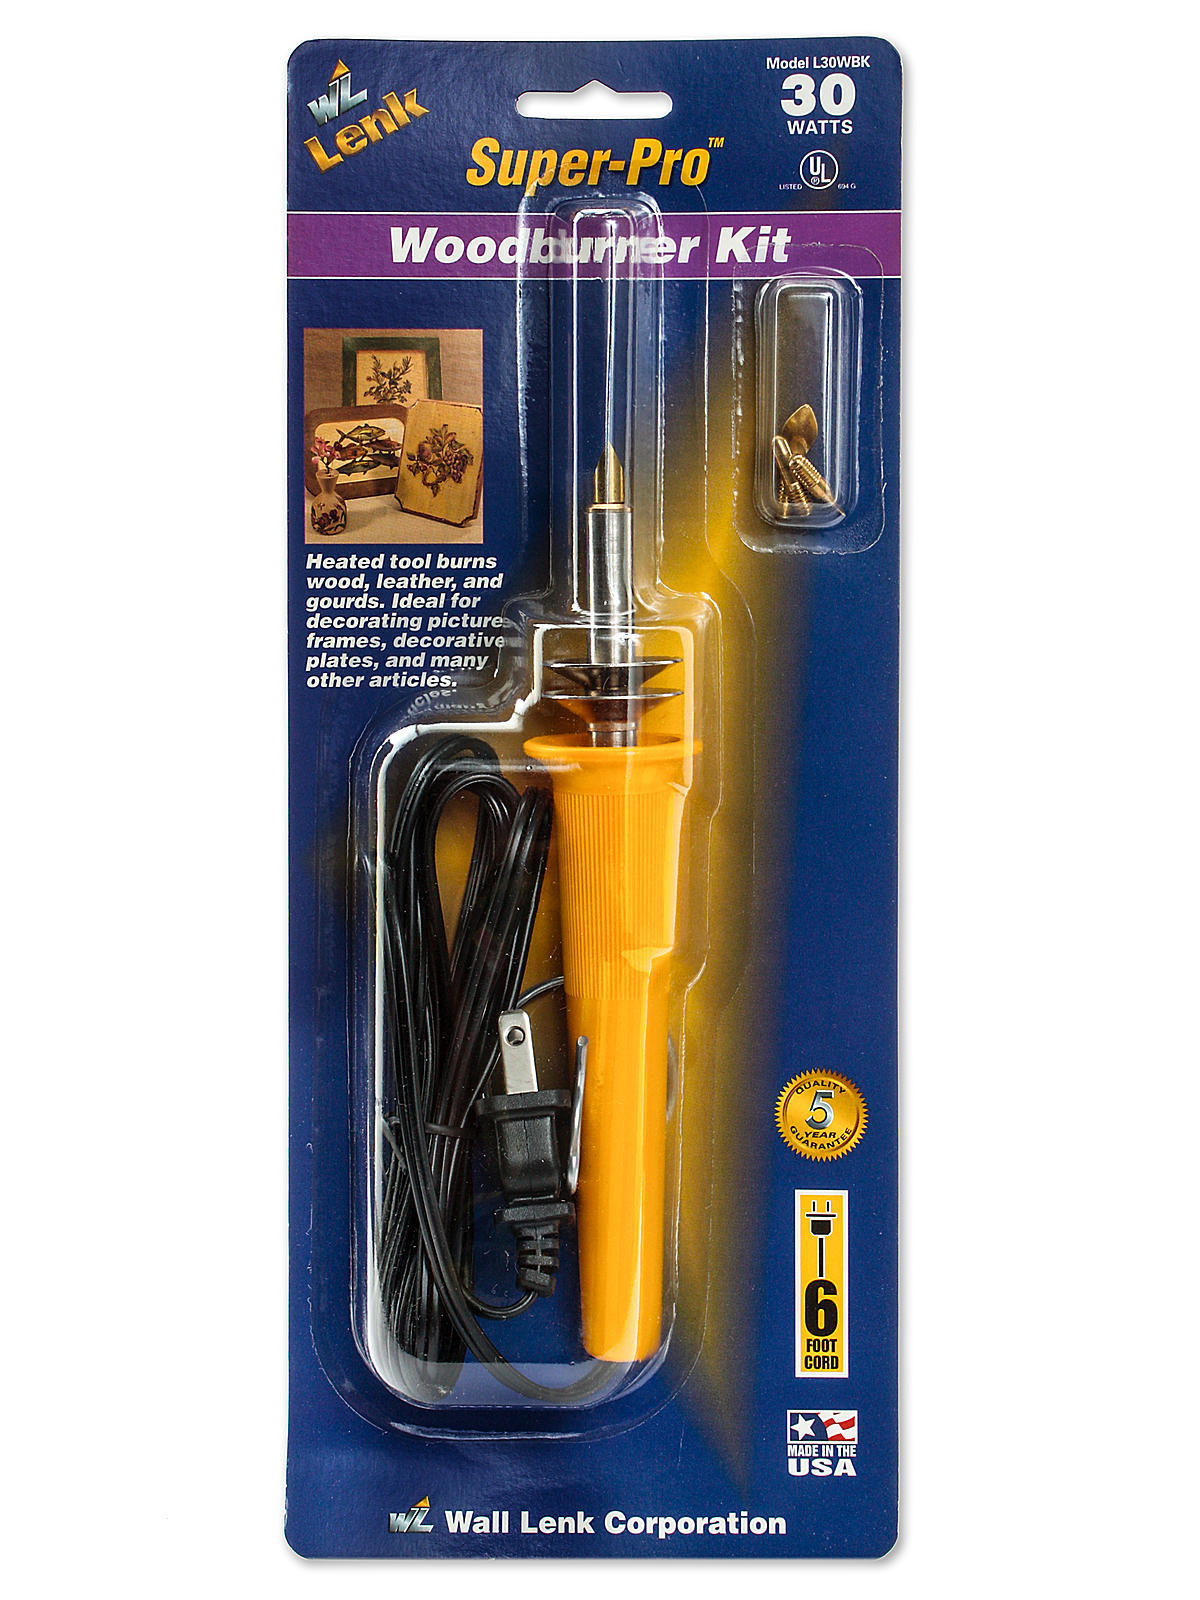 Super-Pro Woodburning Kit